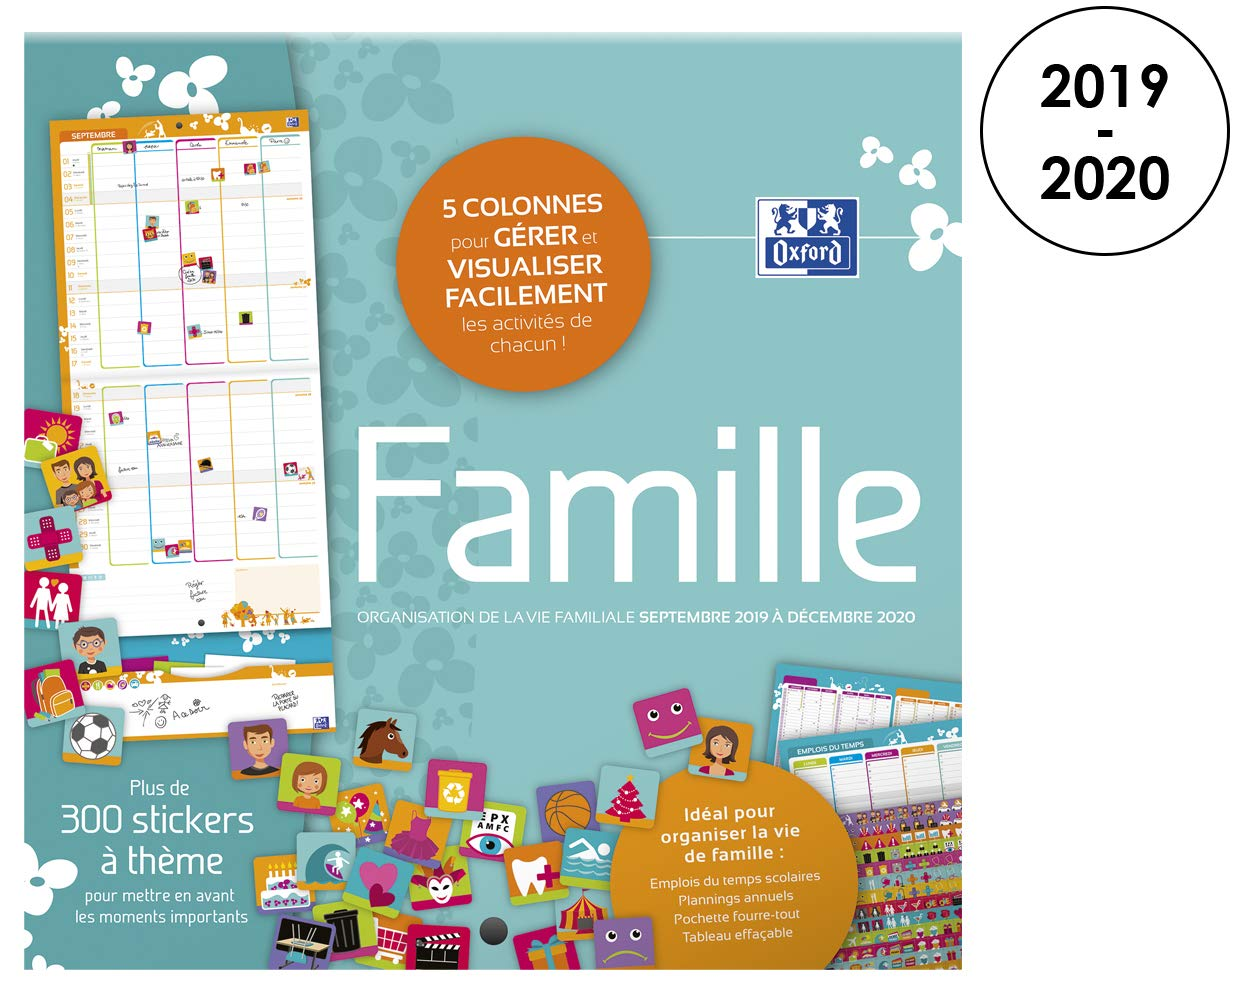 Calendrier Annuel 2020 2020.Top Calendriers Muraux Selon Les Notes Amazon Fr